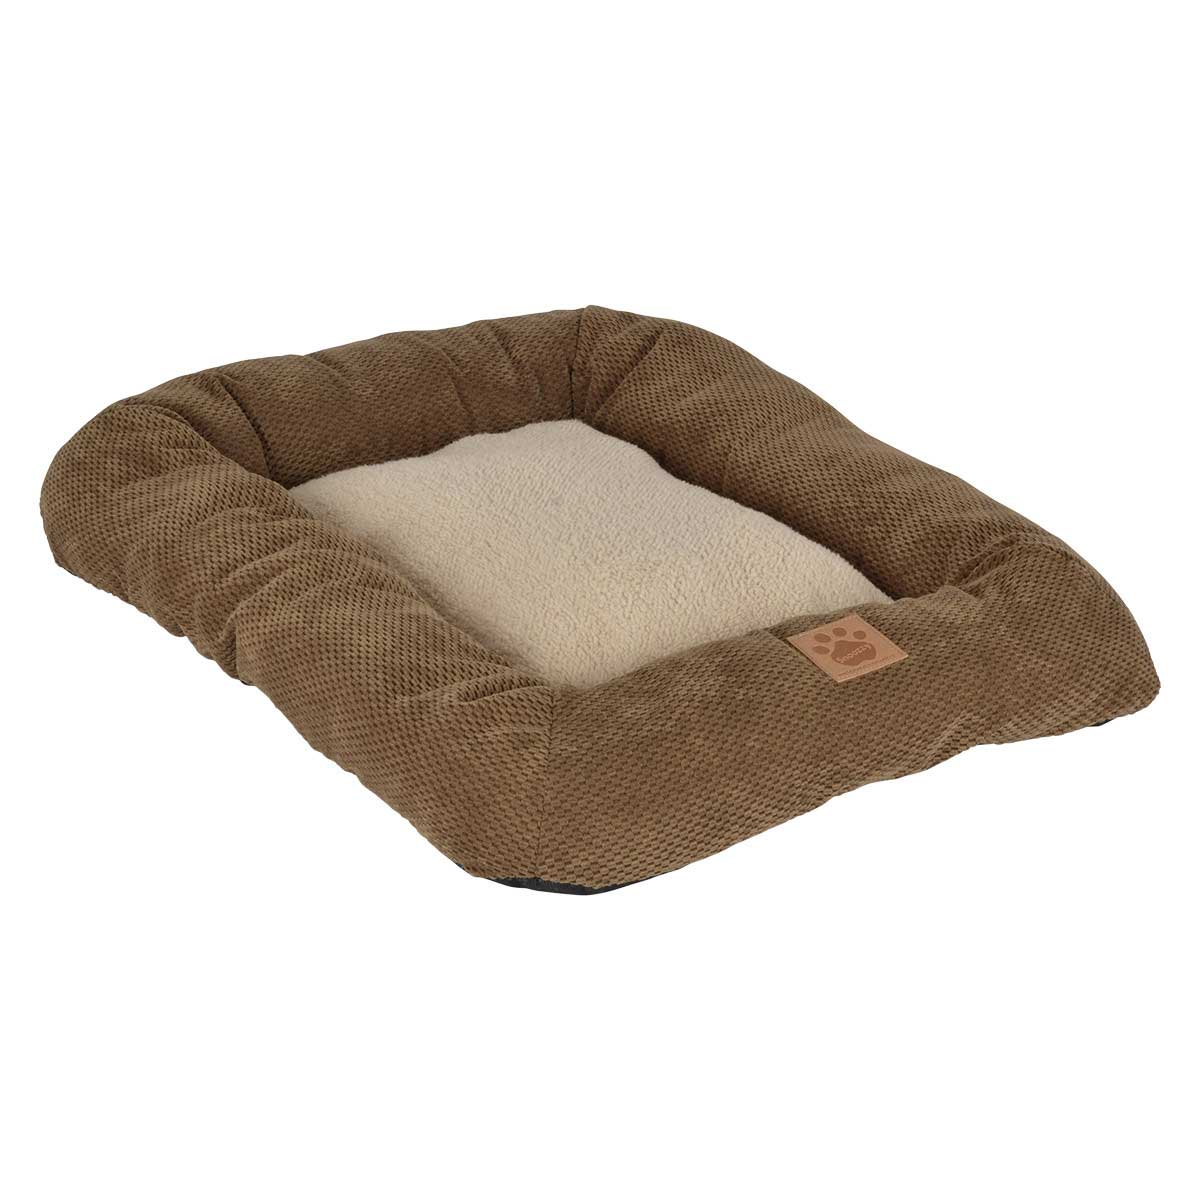 Snoozzy Low Bumper Tan Crate Mat for Dogs 25 inches by 20 inches